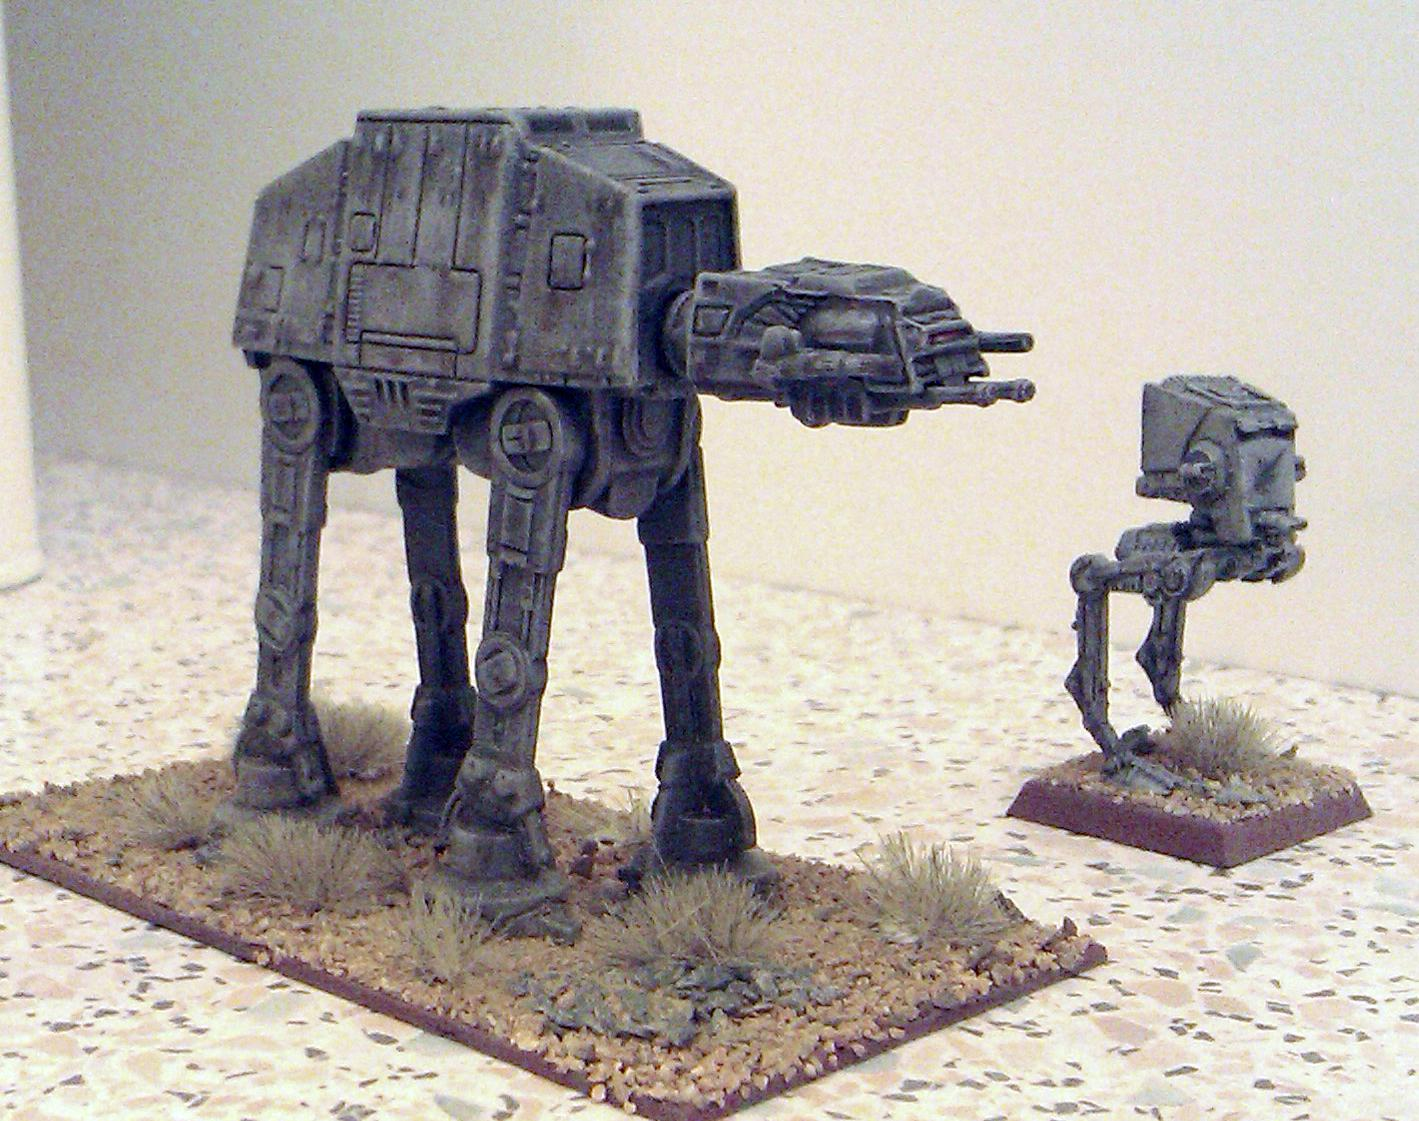 AT-AT, At-st, Desert, Empire, Epic, Imperial, Mech, Robot, Sentinel, Star Wars, Transport, Walker, X-Wing